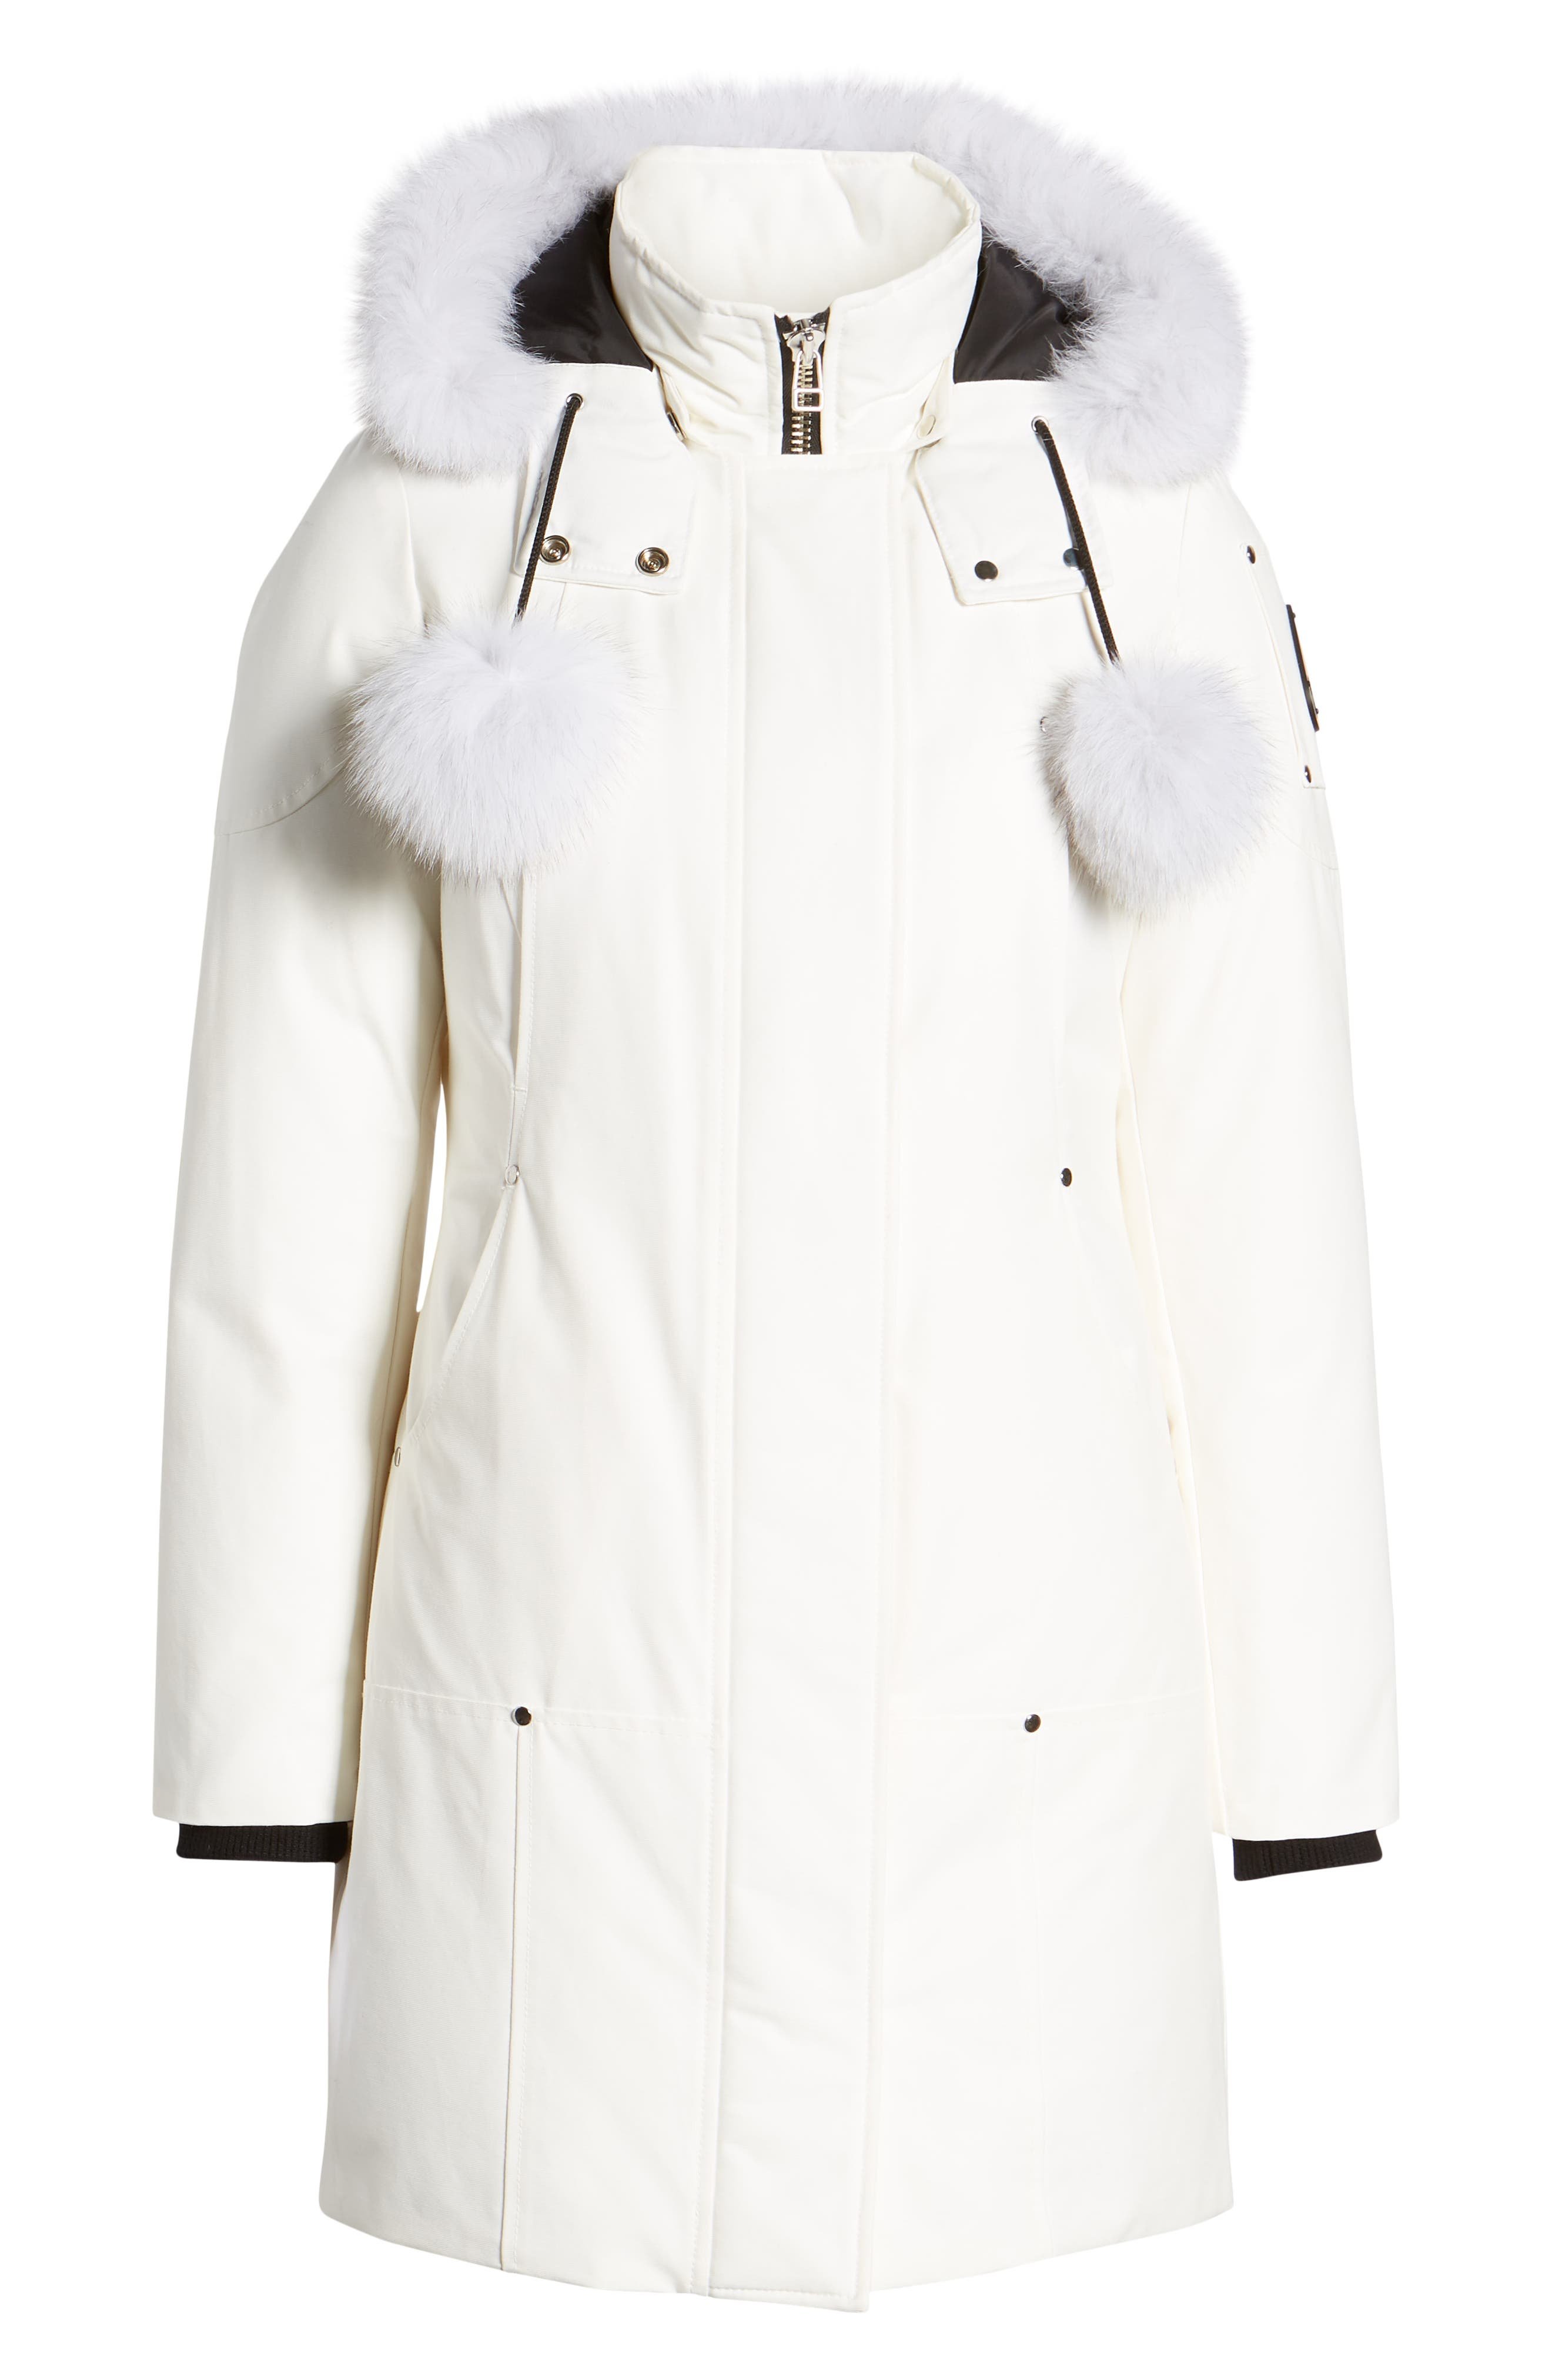 Womens White Coats Jackets Nordstrom Extra Big Size Mysty Black Zip Hoodie Blouse Fit 6l